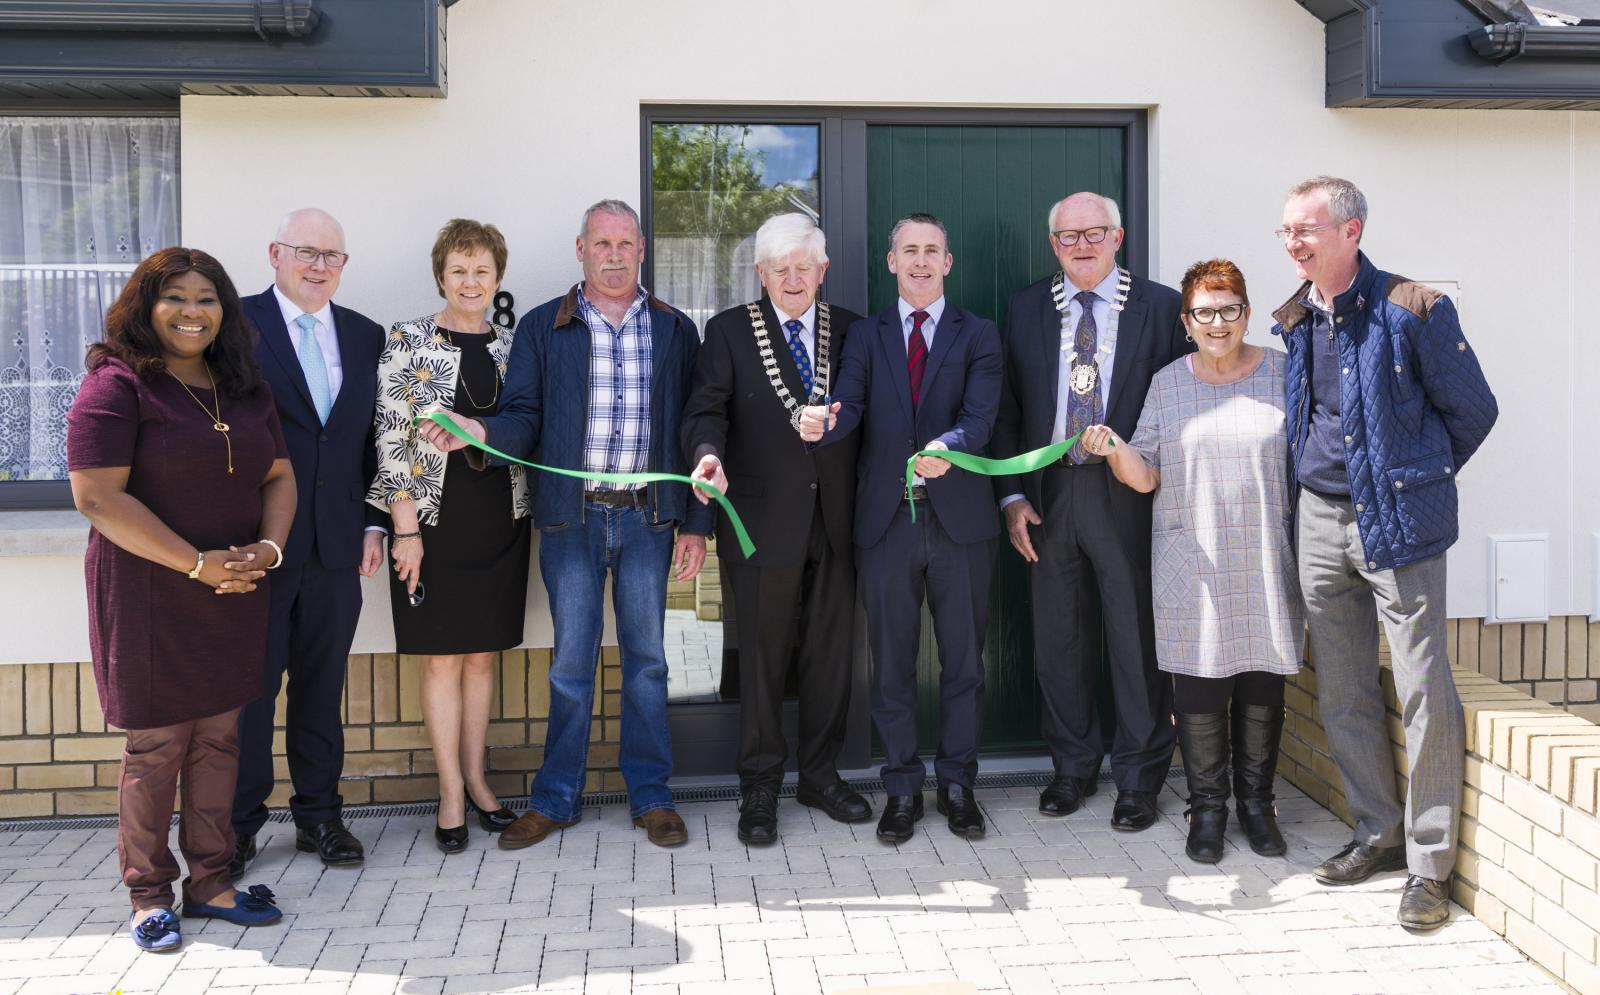 Meath County Council Age Friendly Housing Navan Launch. Ribbon cutting event